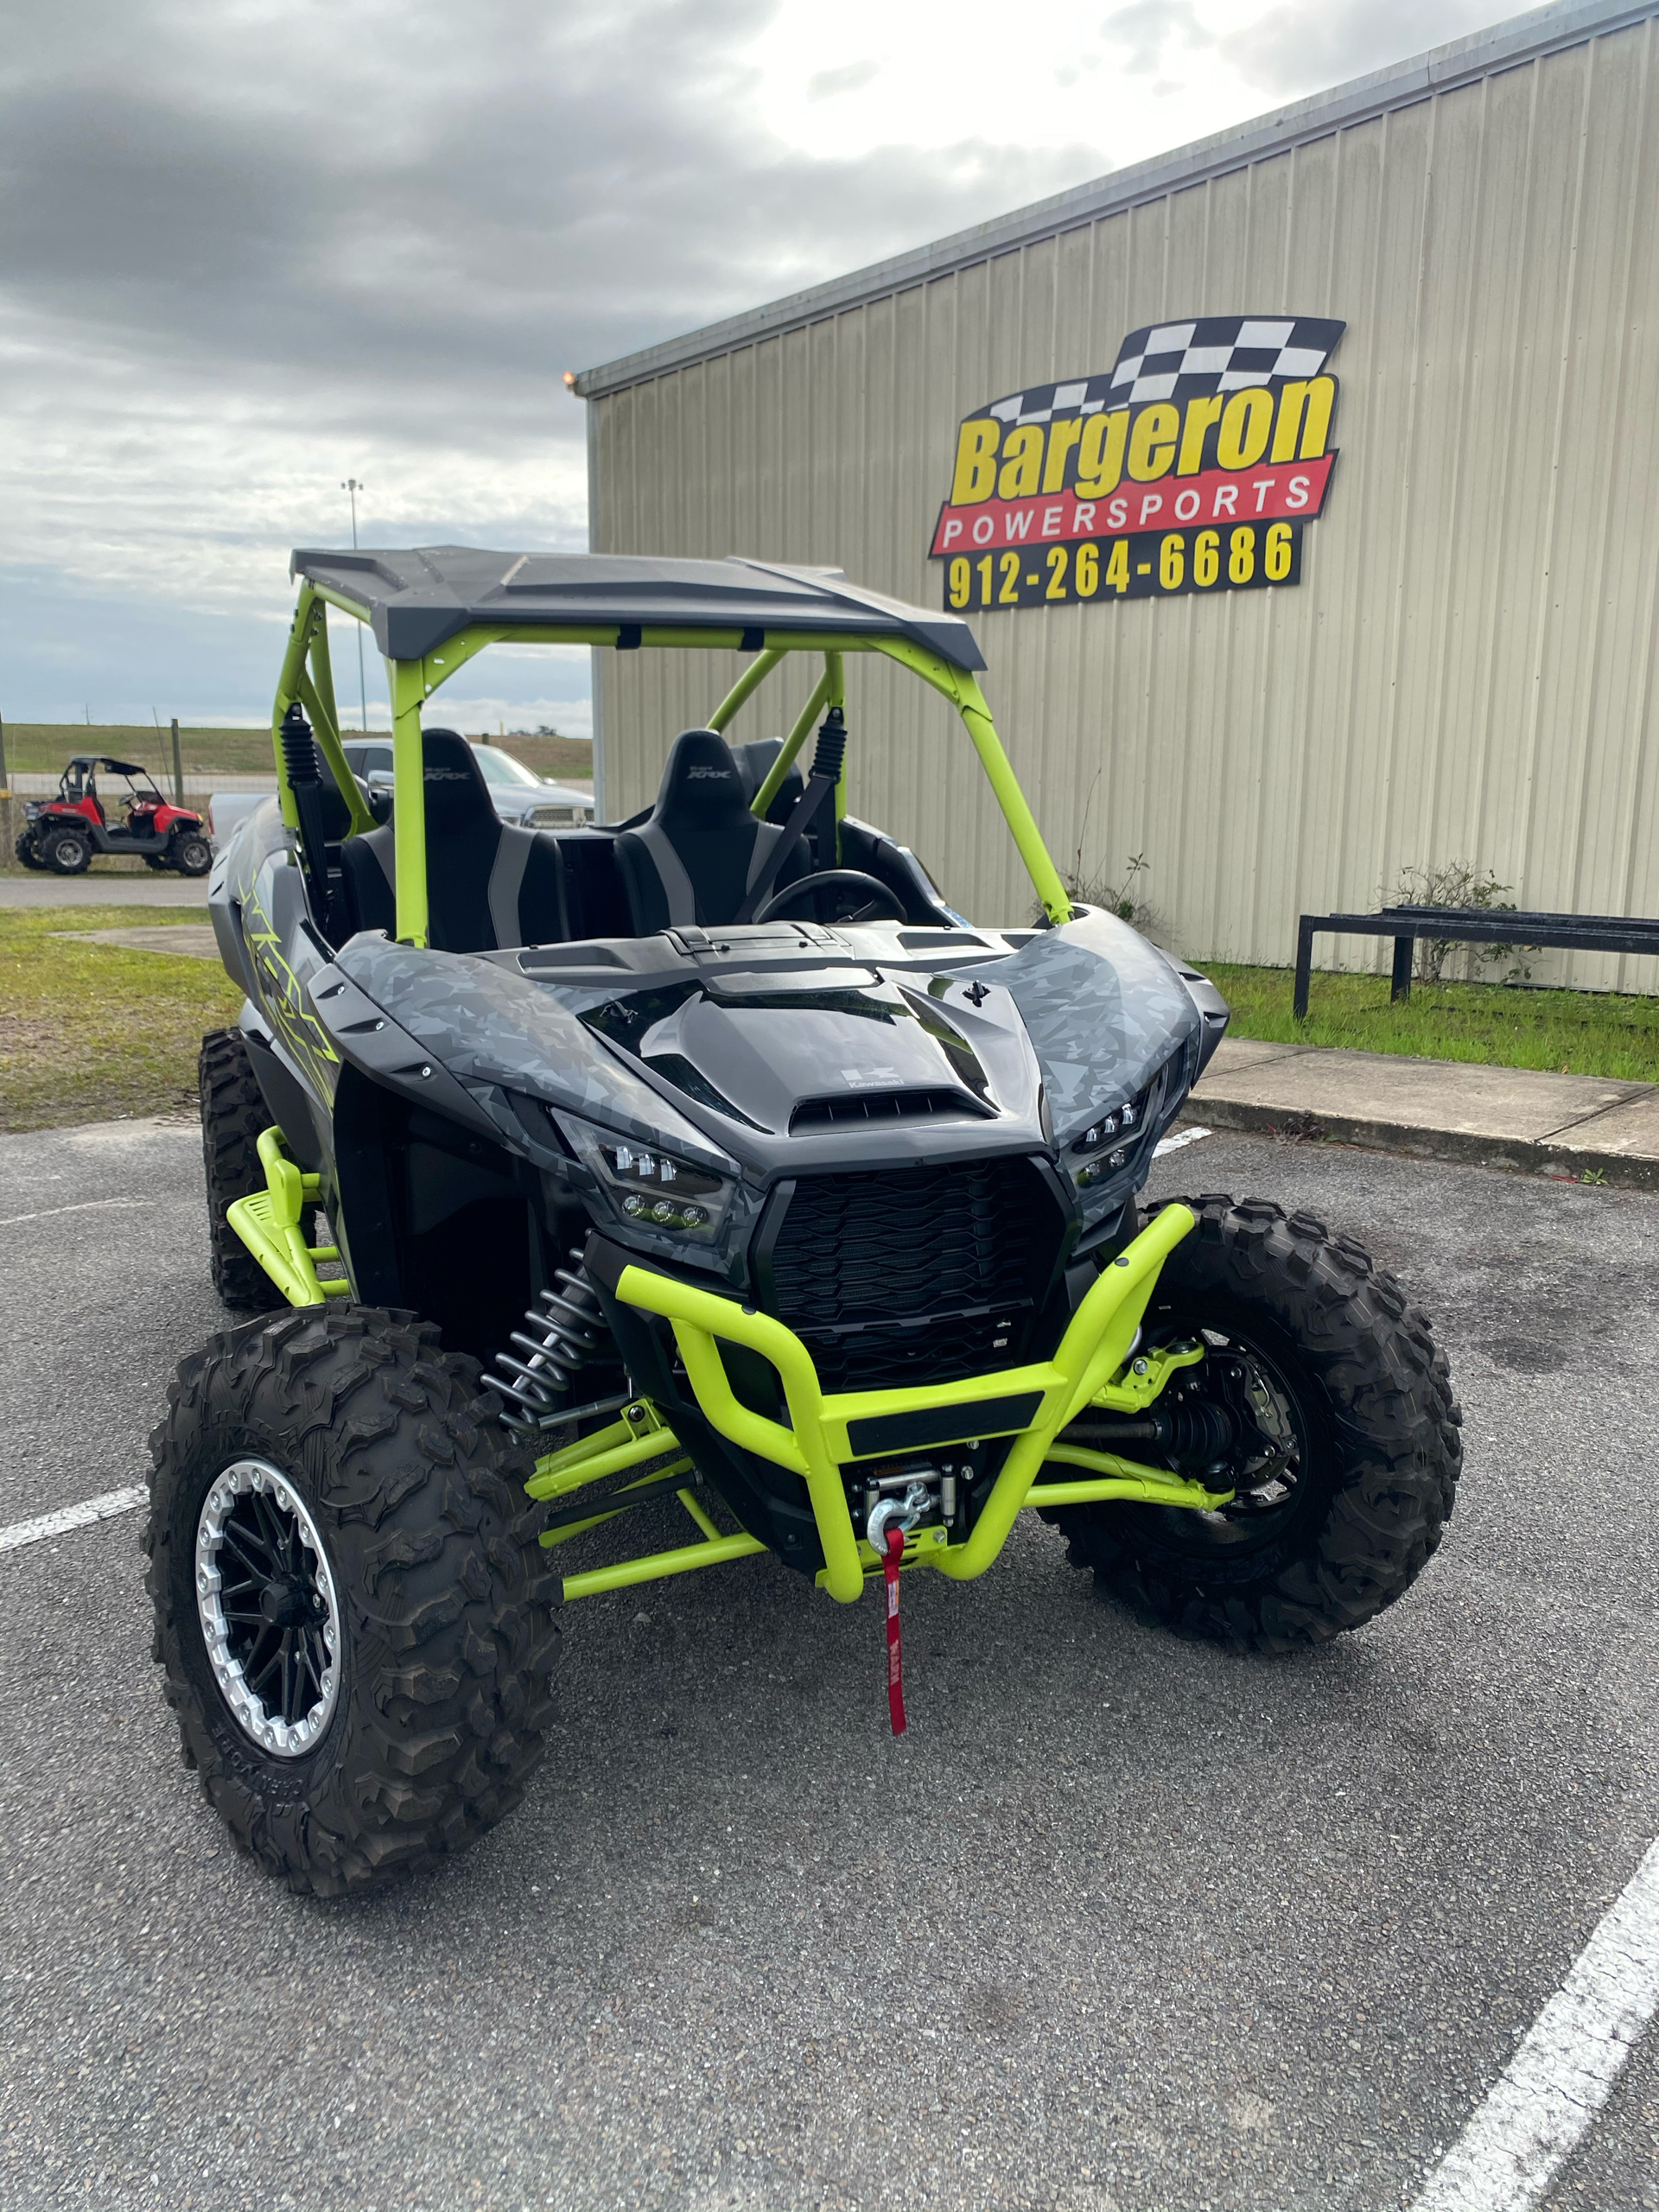 2021 Kawasaki Teryx KRX 1000 Trail Edition in Brunswick, Georgia - Photo 1